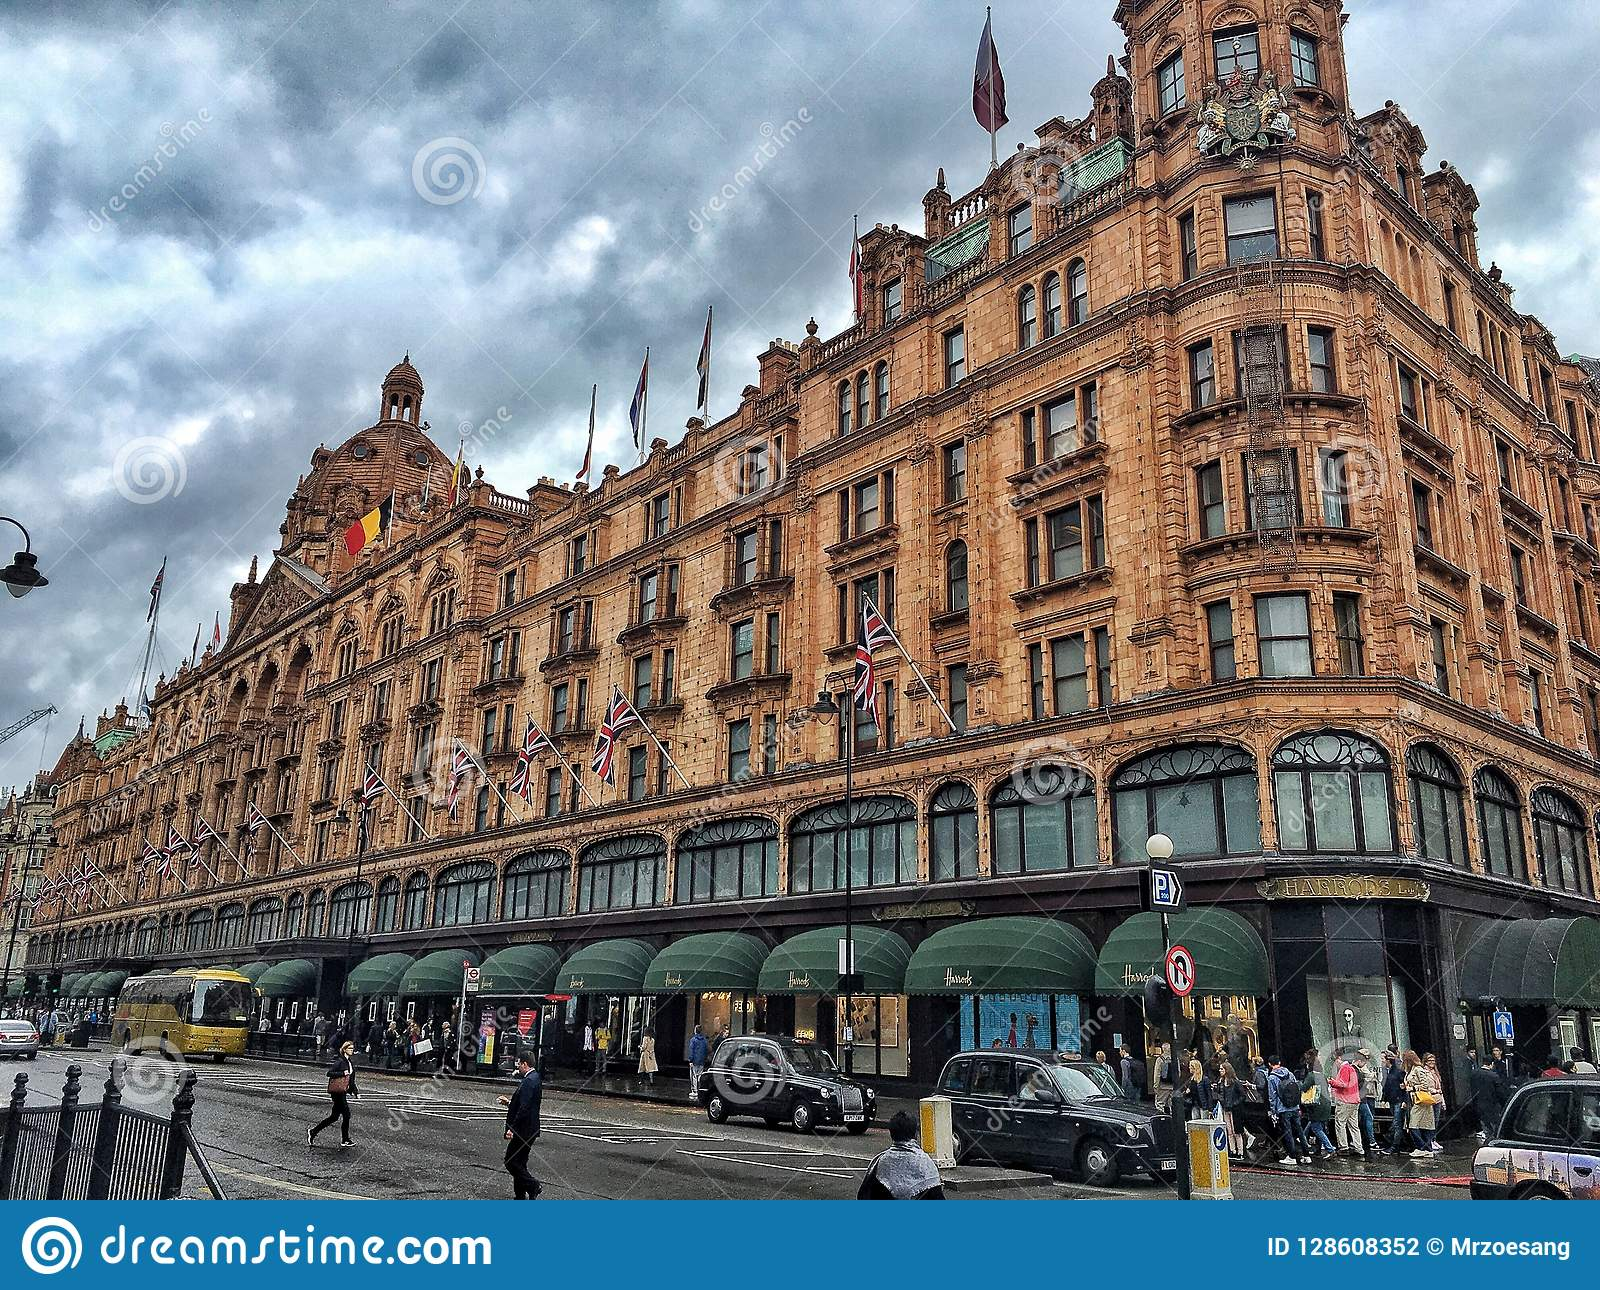 Harrods, the world's most famous department store online with the latest men's and women's designer fashion, luxury gifts, food and accessories.